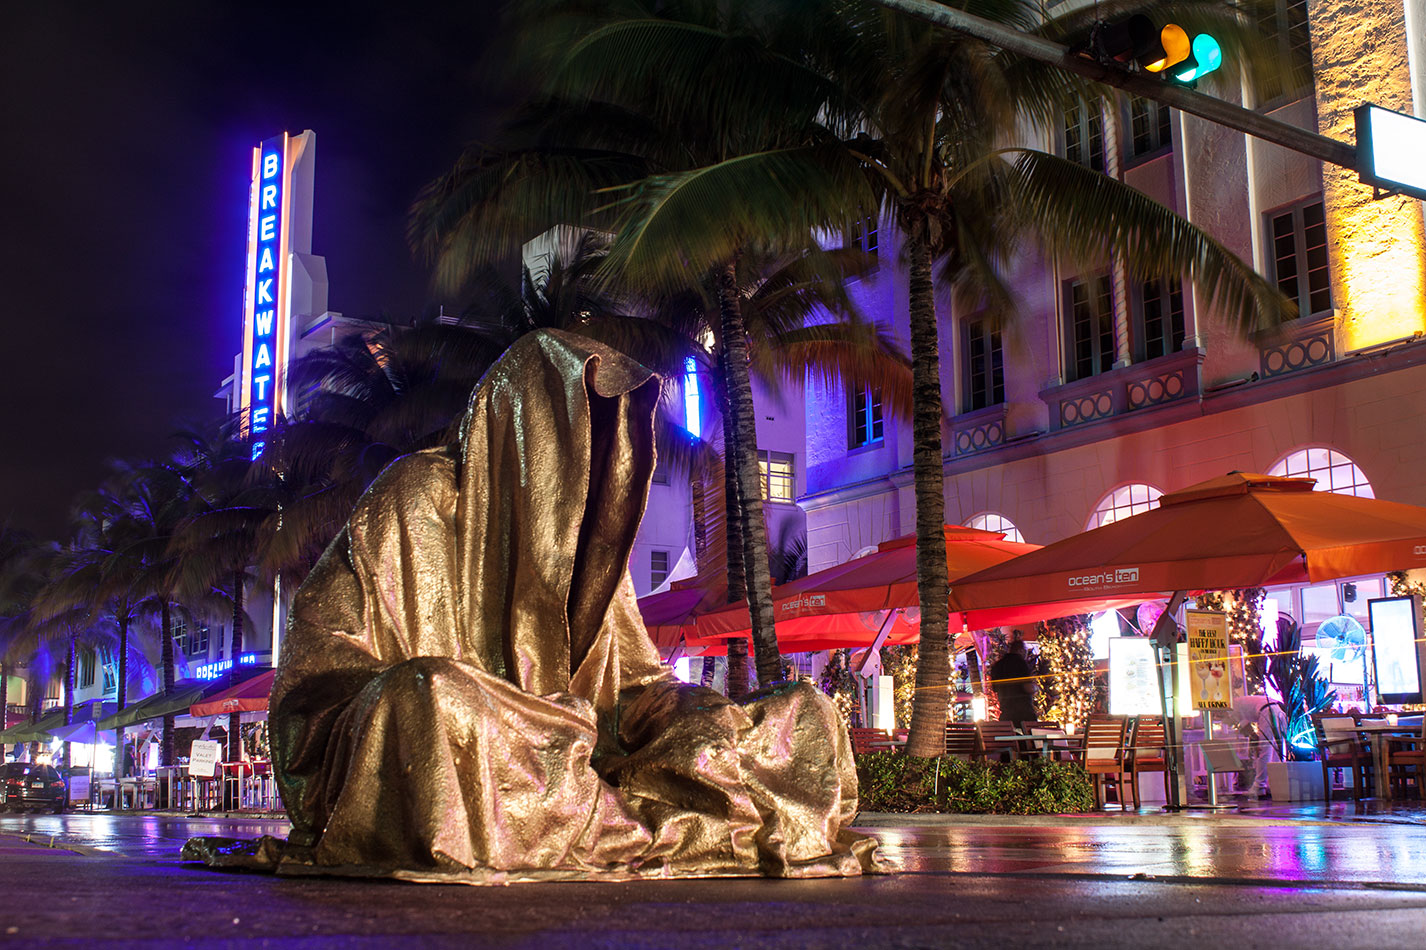 public-art-basel-miami-beach-fair-usa-florida-bass-museum-guardians-of-time-manfred-kili-kielnhofer-contemporary-fine-art-modern-arts-design-antiques-sculpture-6623